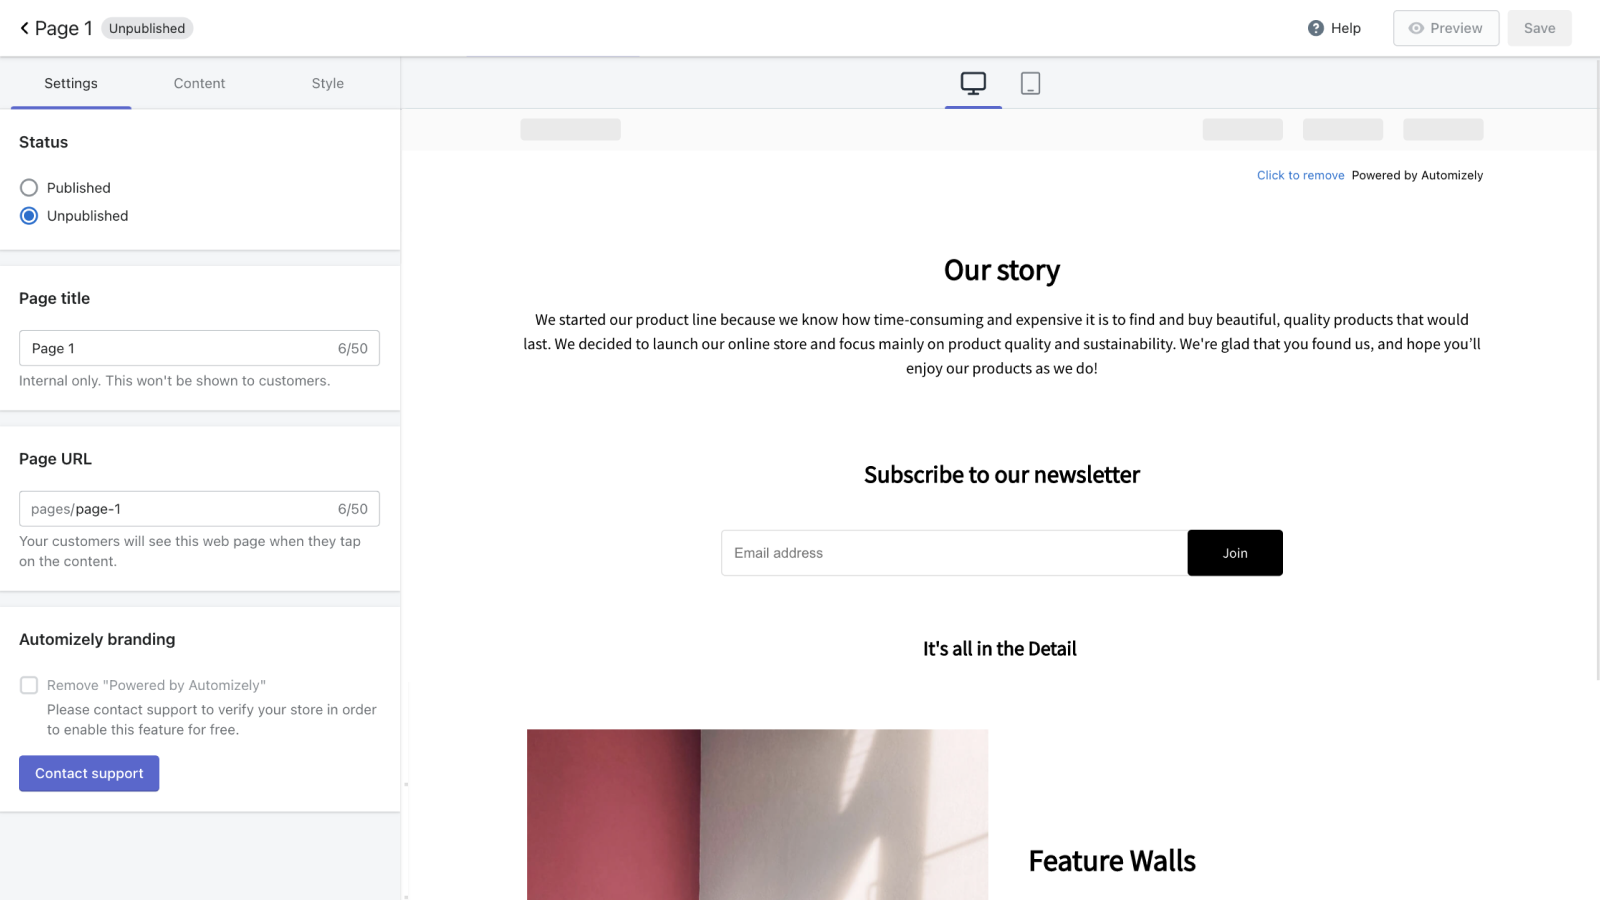 Create about us page to showcase your brand story